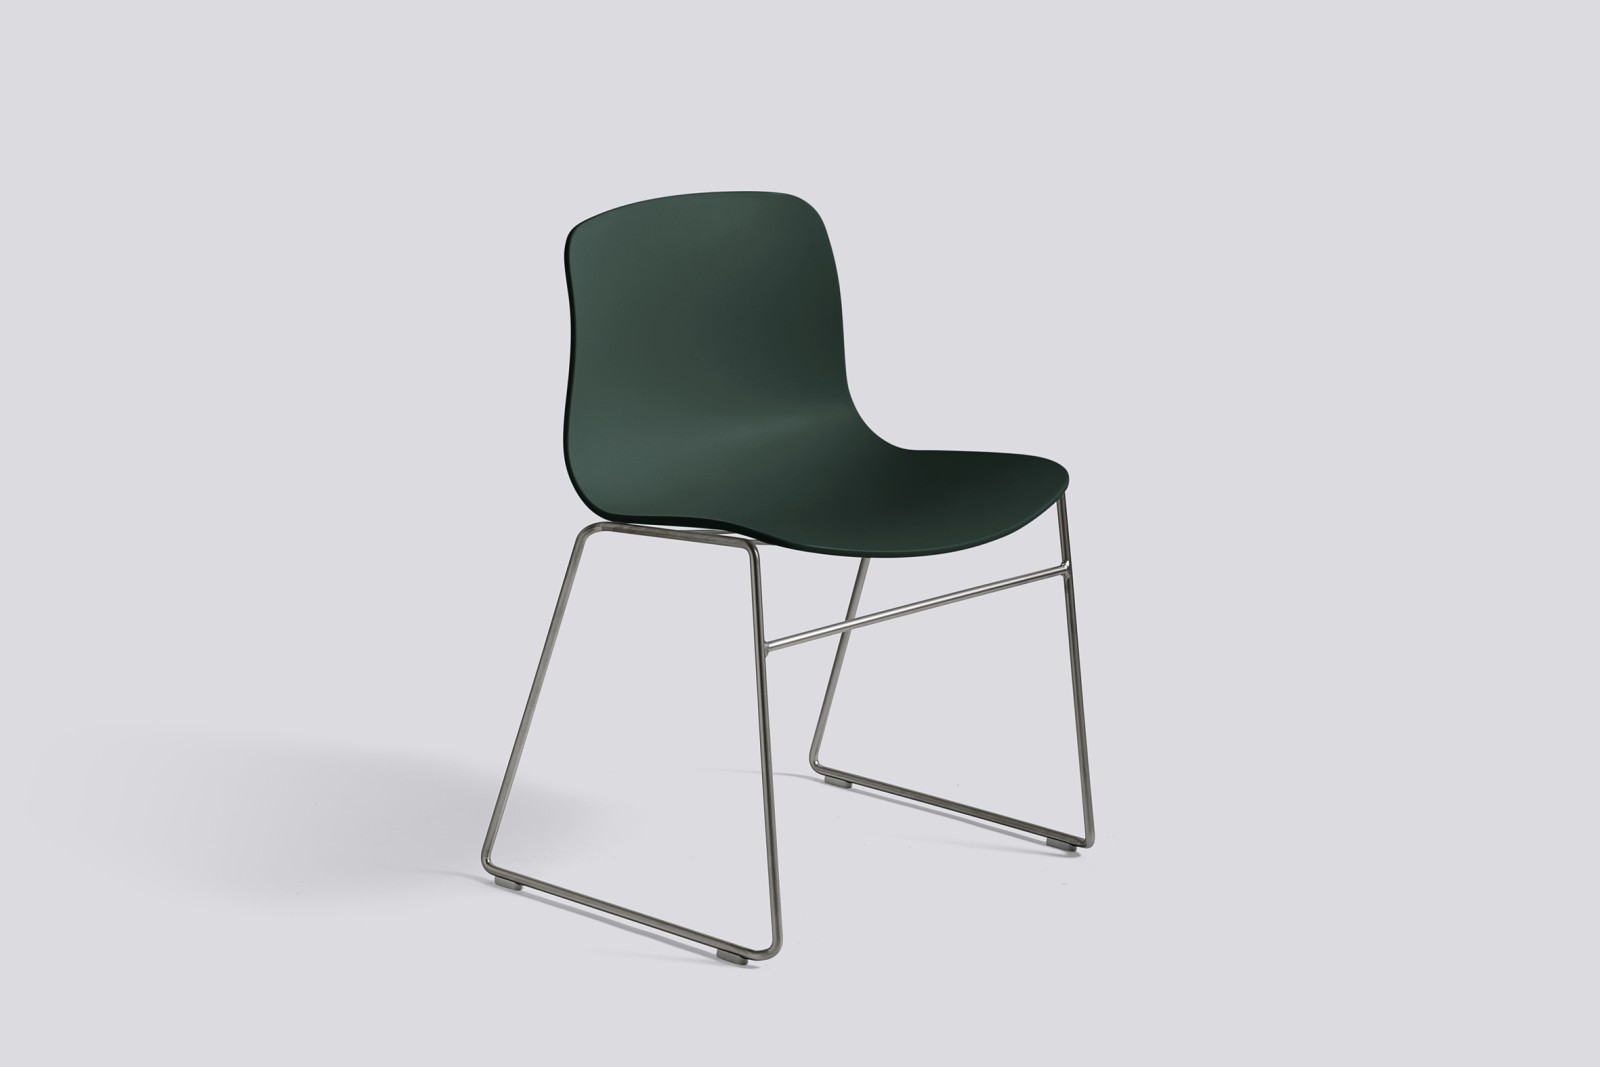 About A Chair AAC08 Hunter Seat and Stainless Steel Base